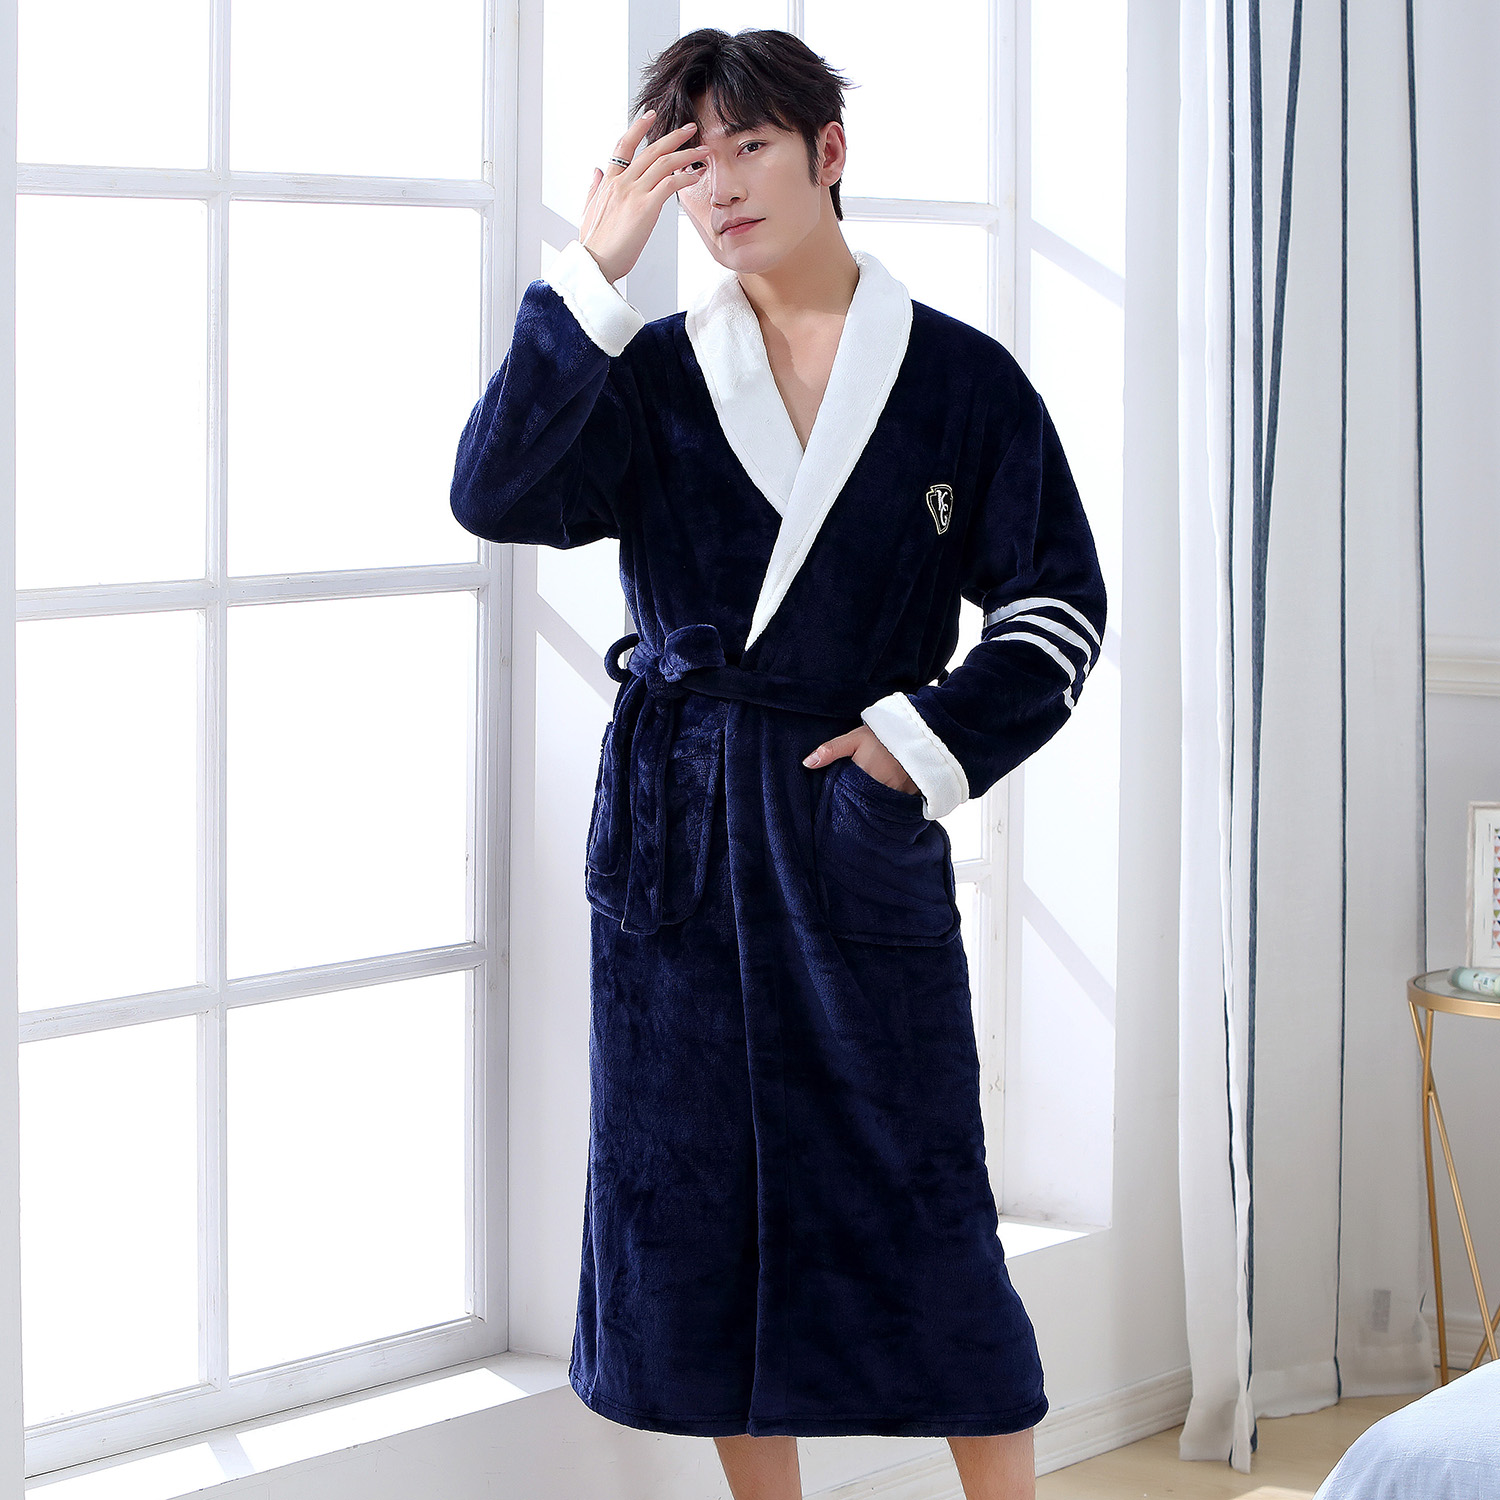 Men Winterkimono Robe Gown Homewear Comfortable Keep Warm Flannel Sleepwear Nightgown Casual Soft Bath Gown Nightgown Pajamas